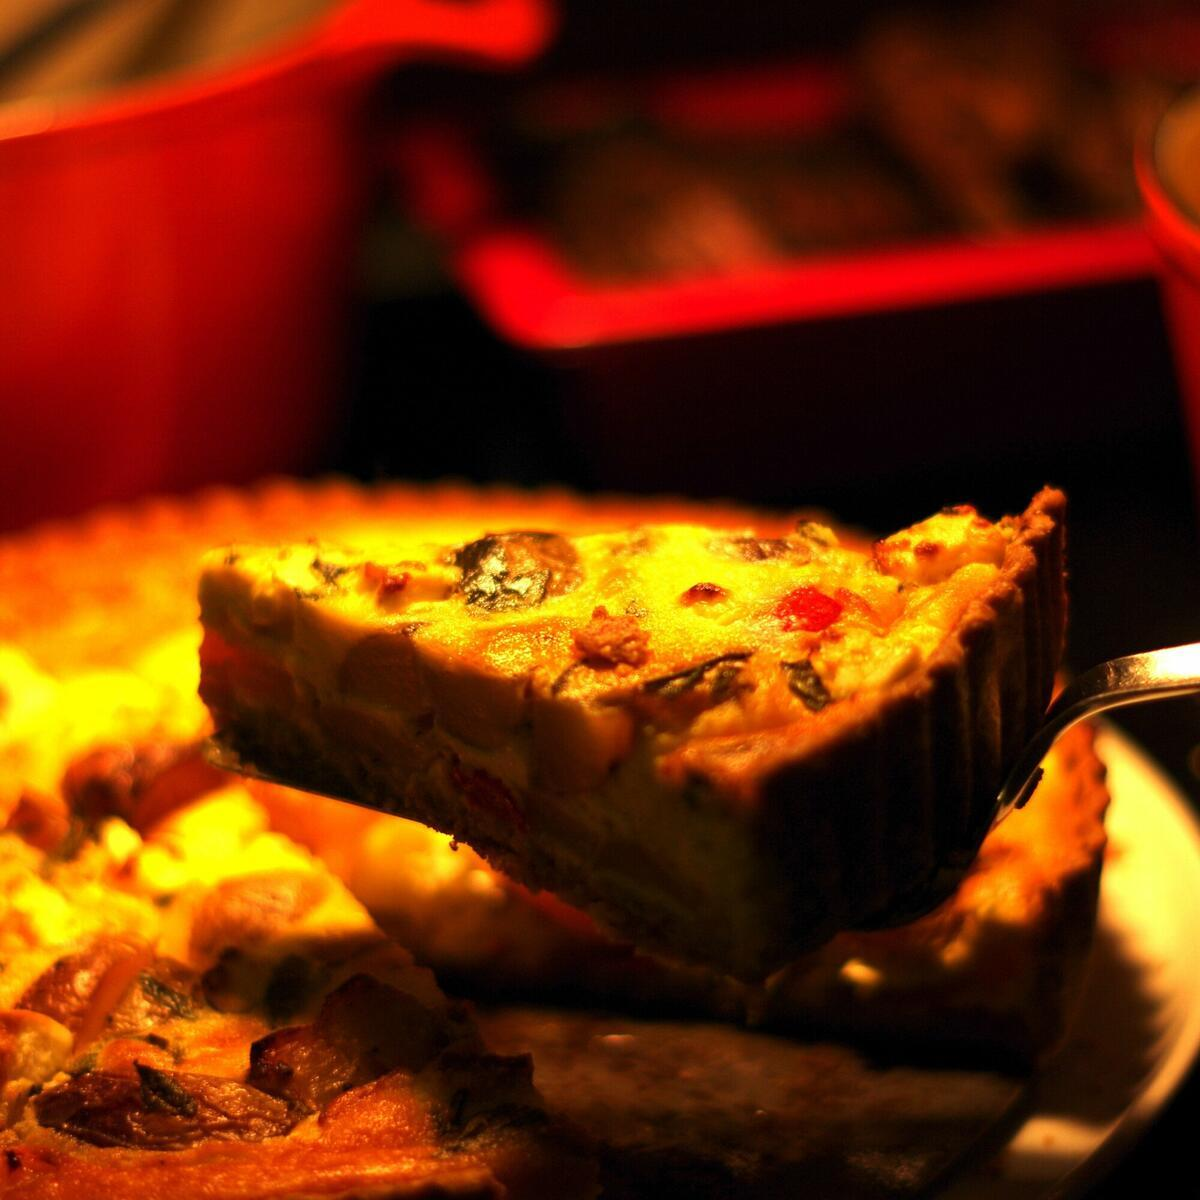 a slice of our award-winning quiche